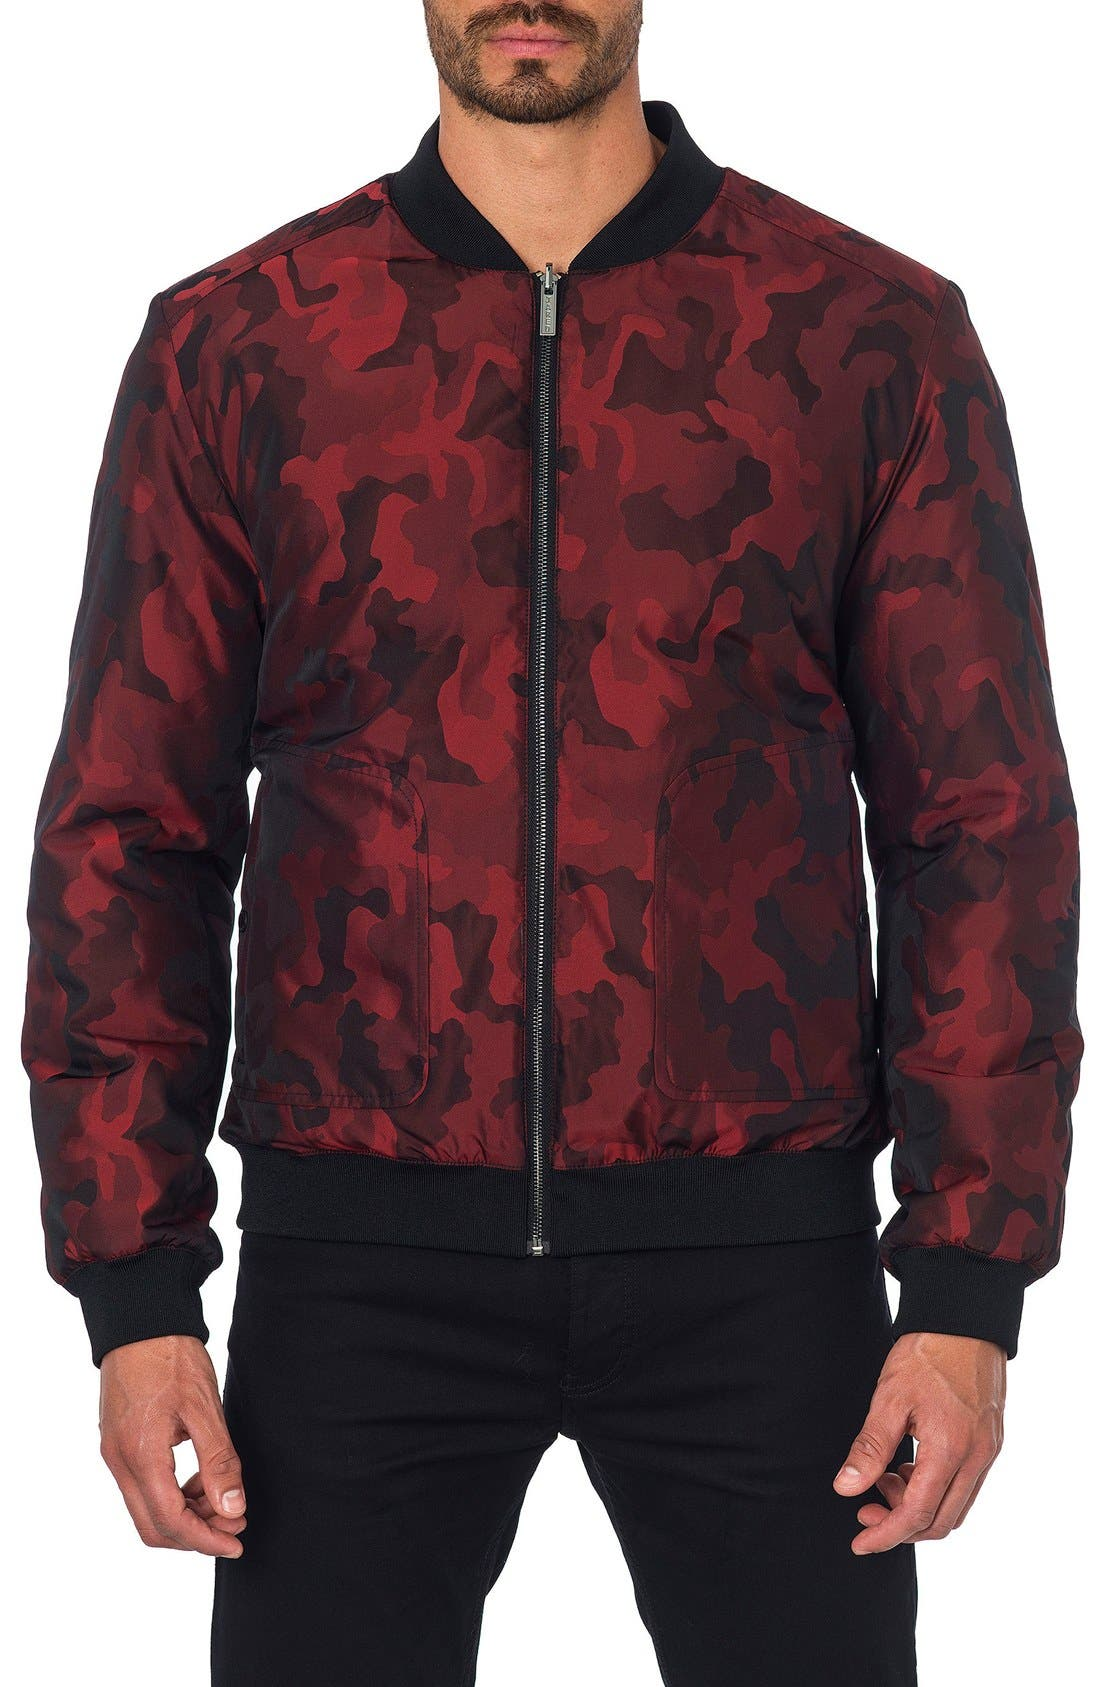 New York Reversible Bomber Jacket,                             Alternate thumbnail 5, color,                             Red Camo/ Black Quilted